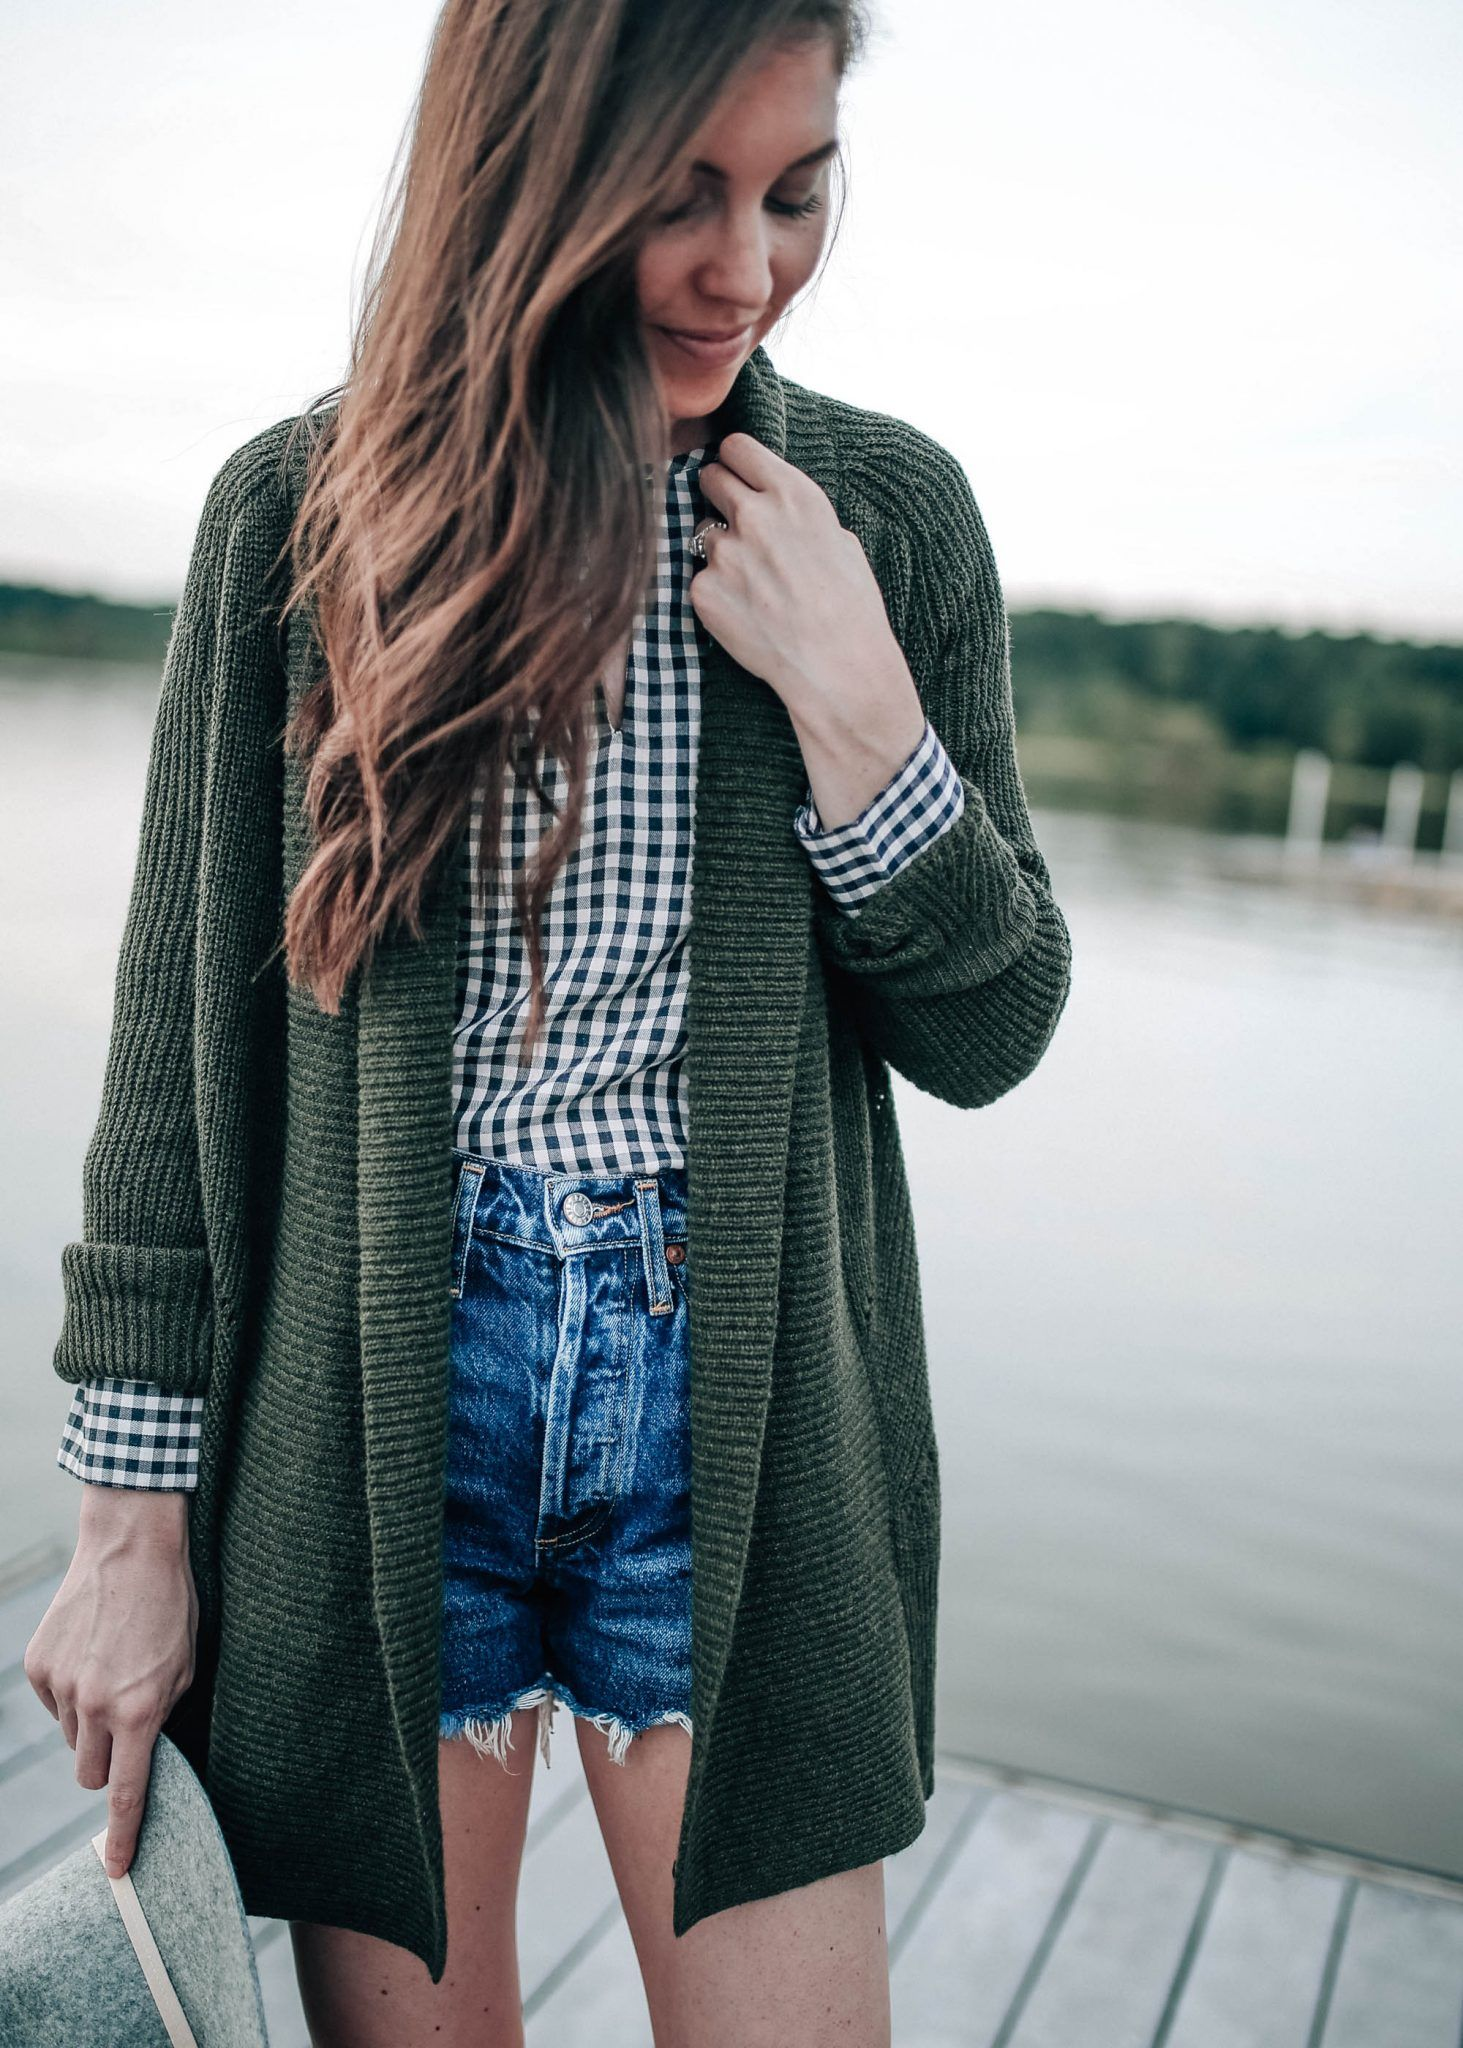 Flannel shirt with shorts  Denim Shorts for Fall  Open cardigan Flannel shirts and Gingham